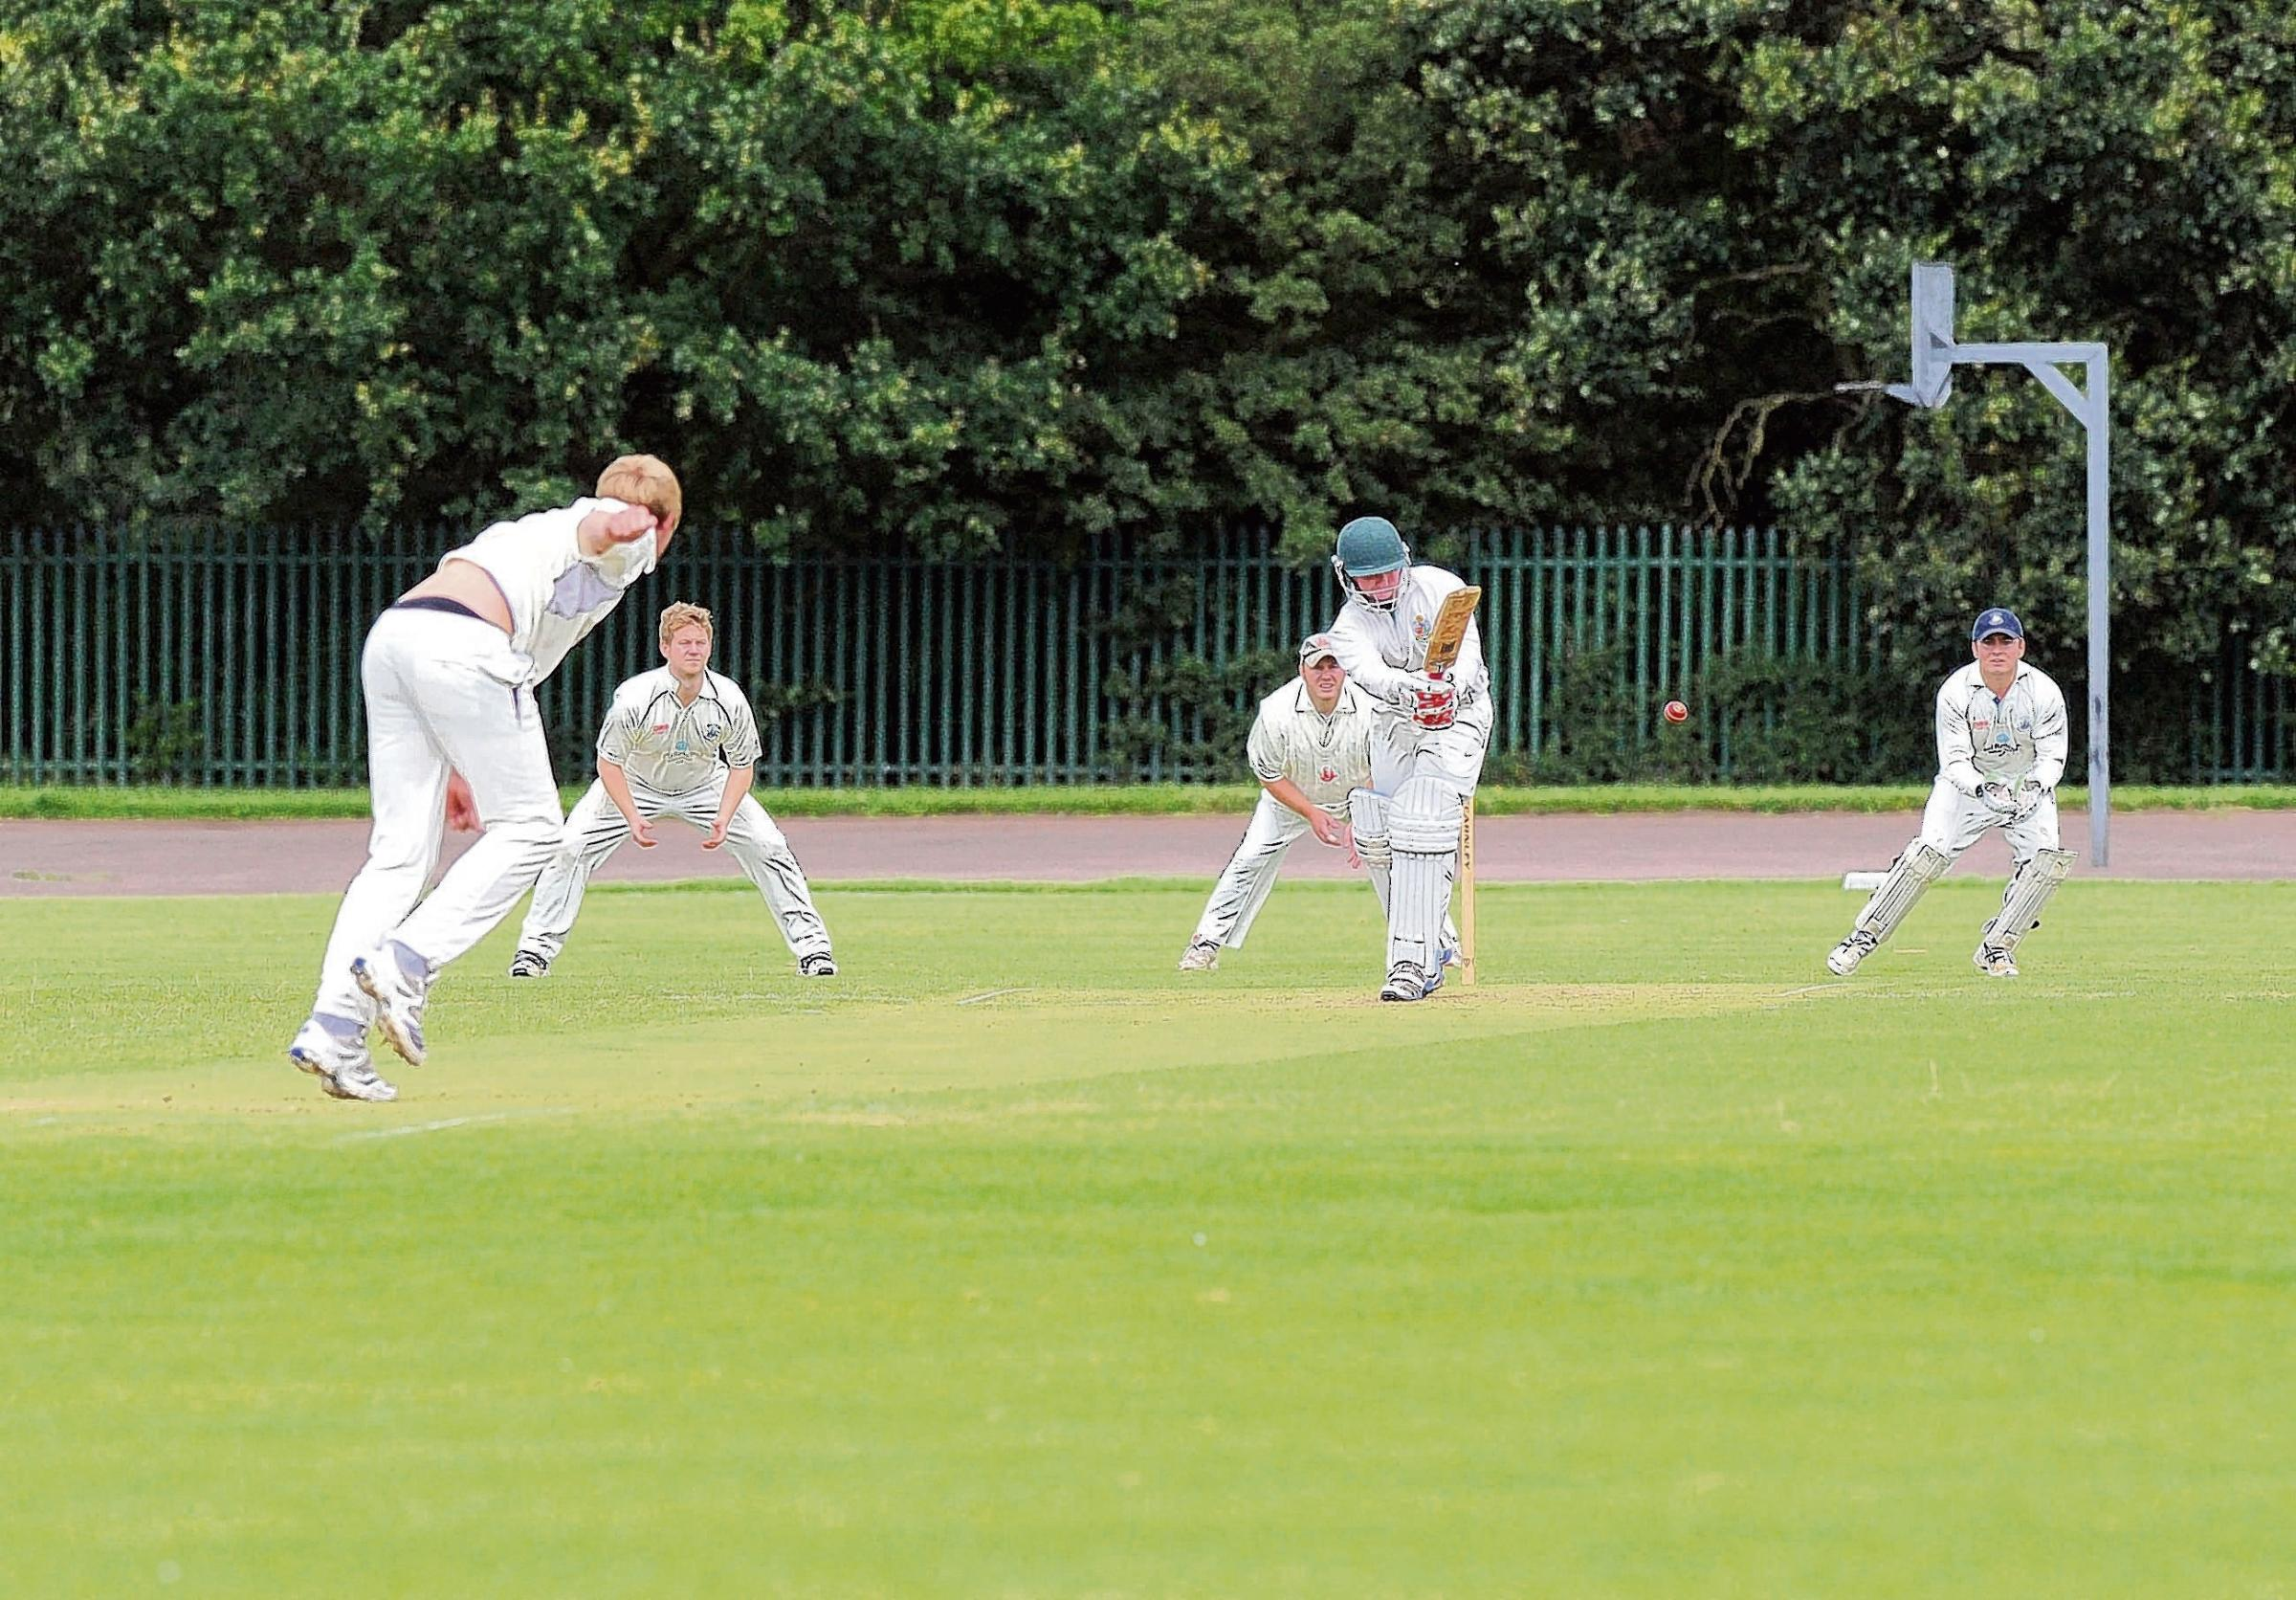 James Wilkins at the crease for Benfleet last year